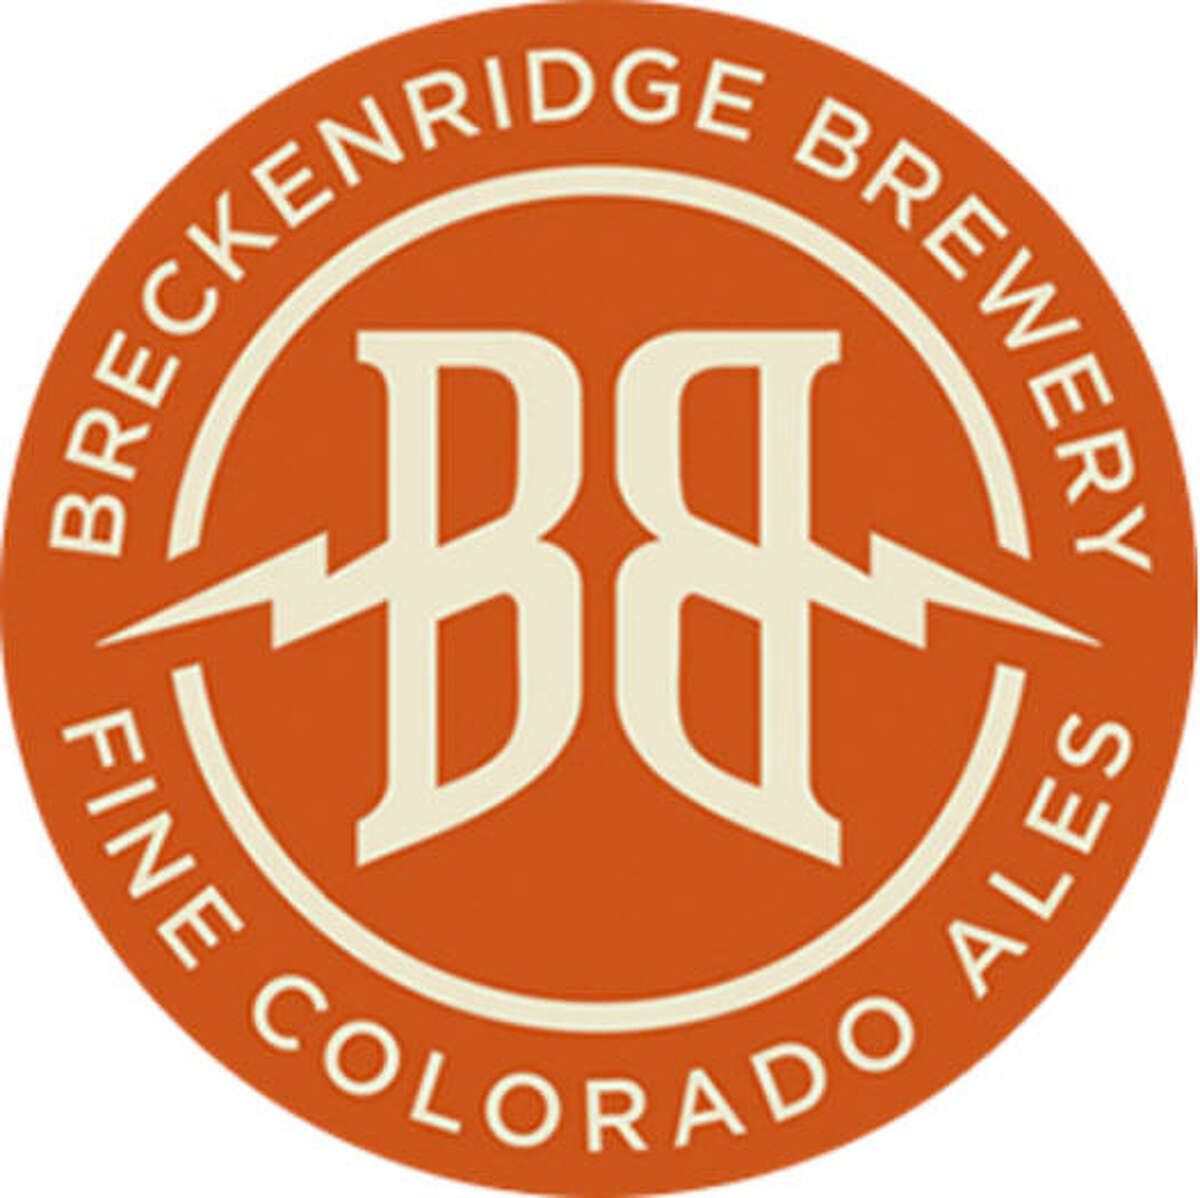 Breckenridge Brewery Owned byAnheuser Busch-InBev Continue clicking to see the list of craft beers and surprising imports owned by major American corporations.